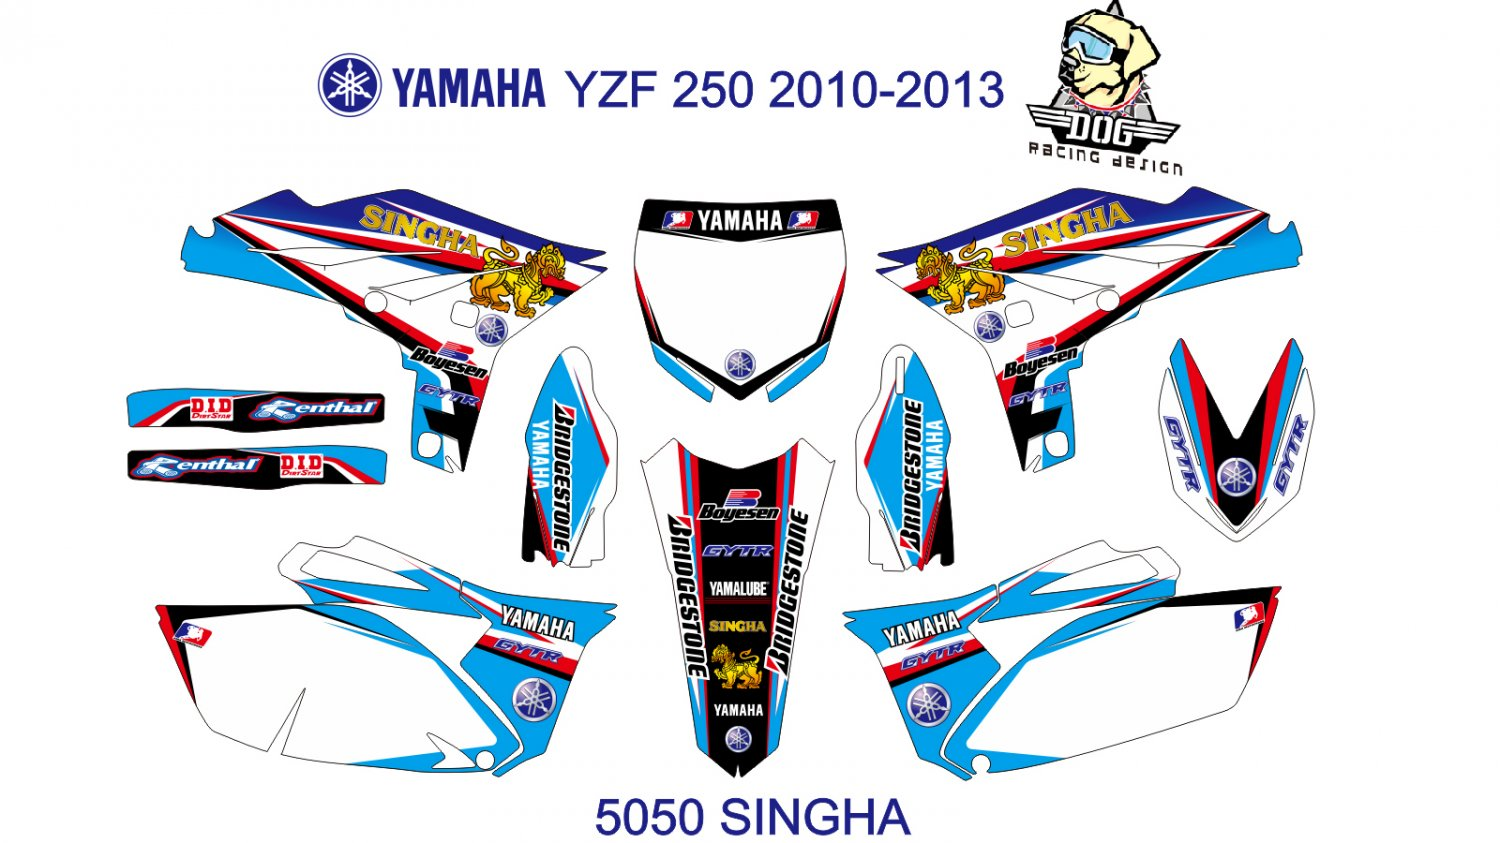 YAMAHA YZF 250 2010-2013 GRAPHIC DECAL KIT CODE.5050